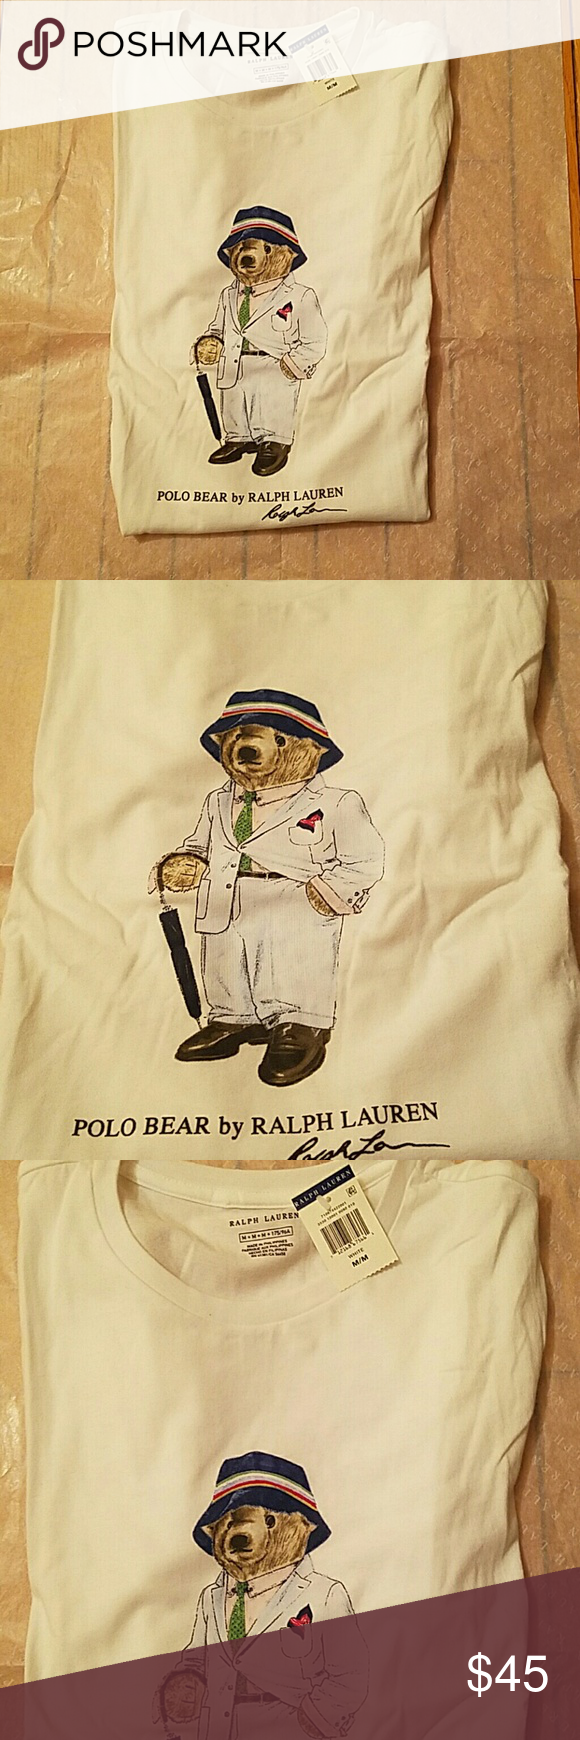 ad59e4cf Ralph Lauren limited edition Polo Bear t-shirt 2017 limited edition Polo  Bear t-shirt sporting a seersucker suit and bucket hat.. this item is sold  out from ...